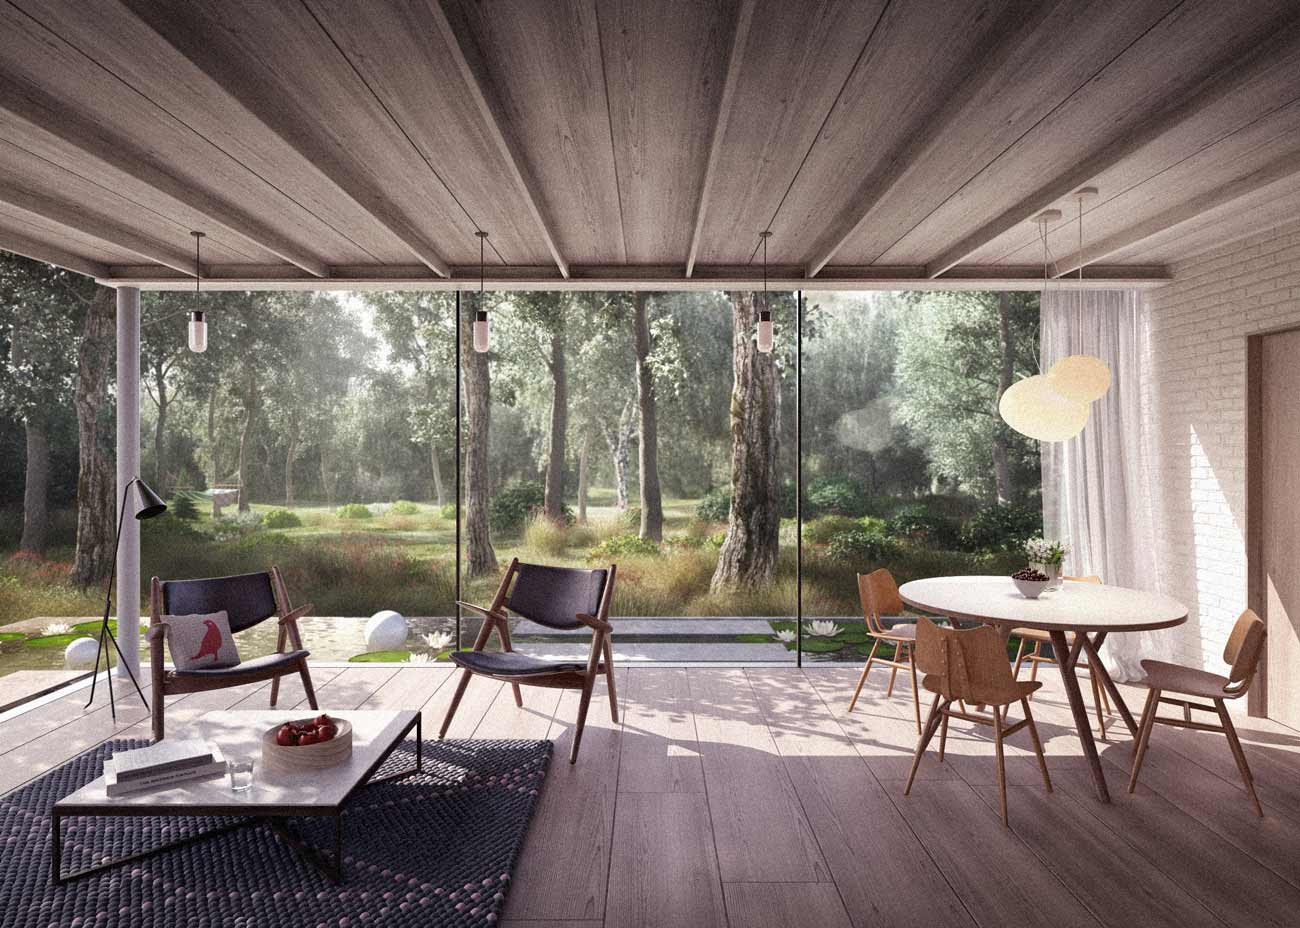 New build architect designed essex house: finding land